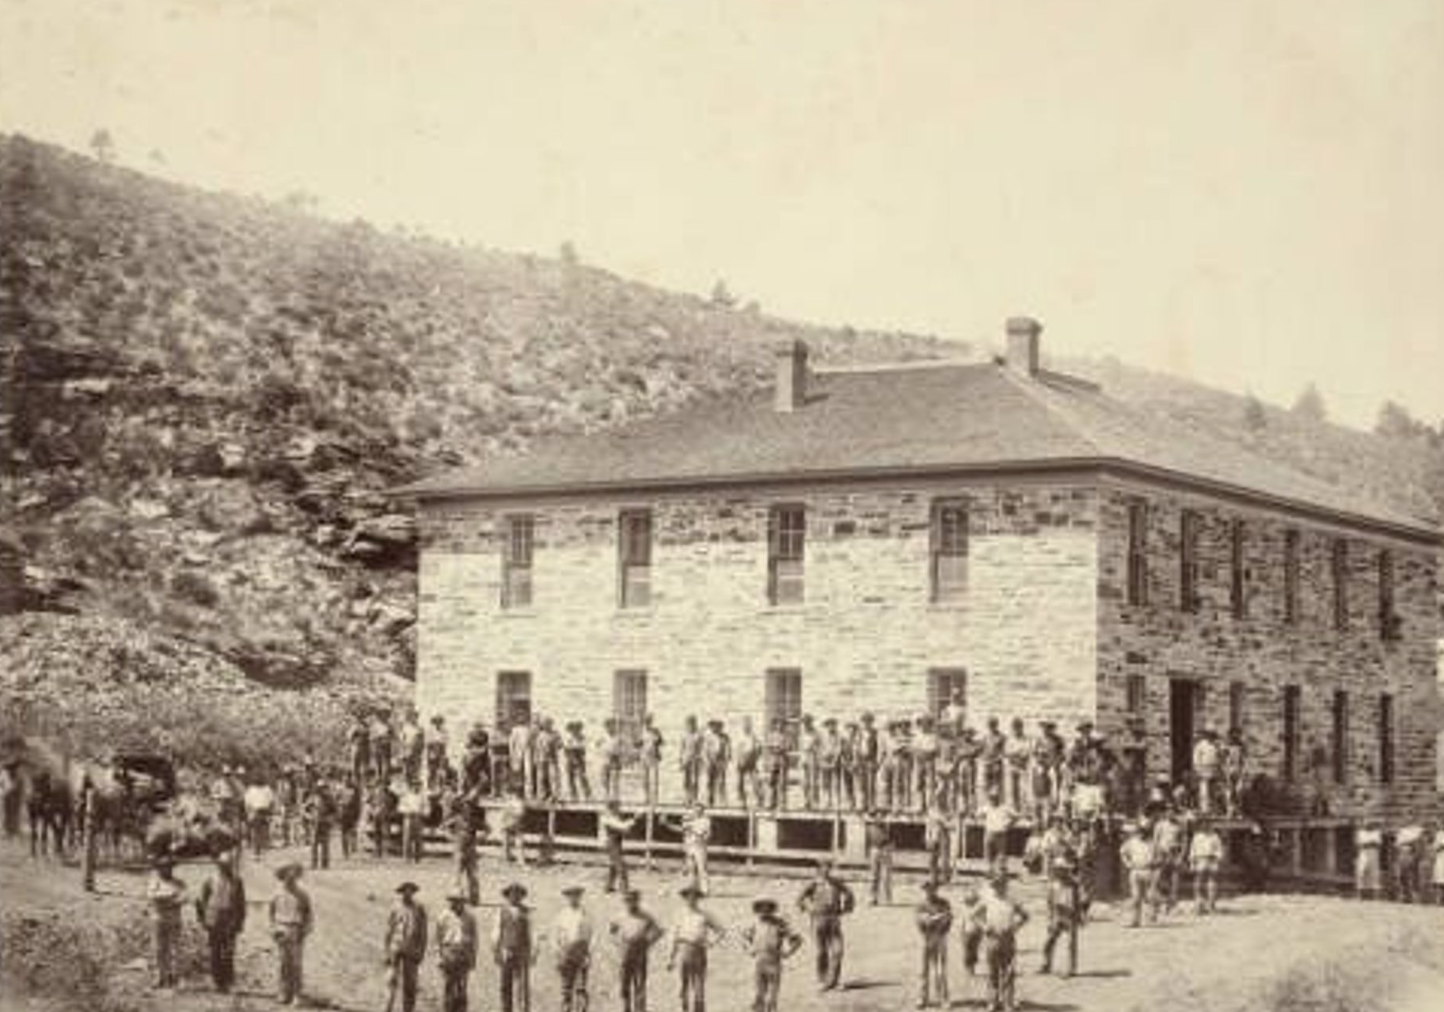 Quarriers near a stone lodging house, 1893. (Courtesy of Denver Public Library)